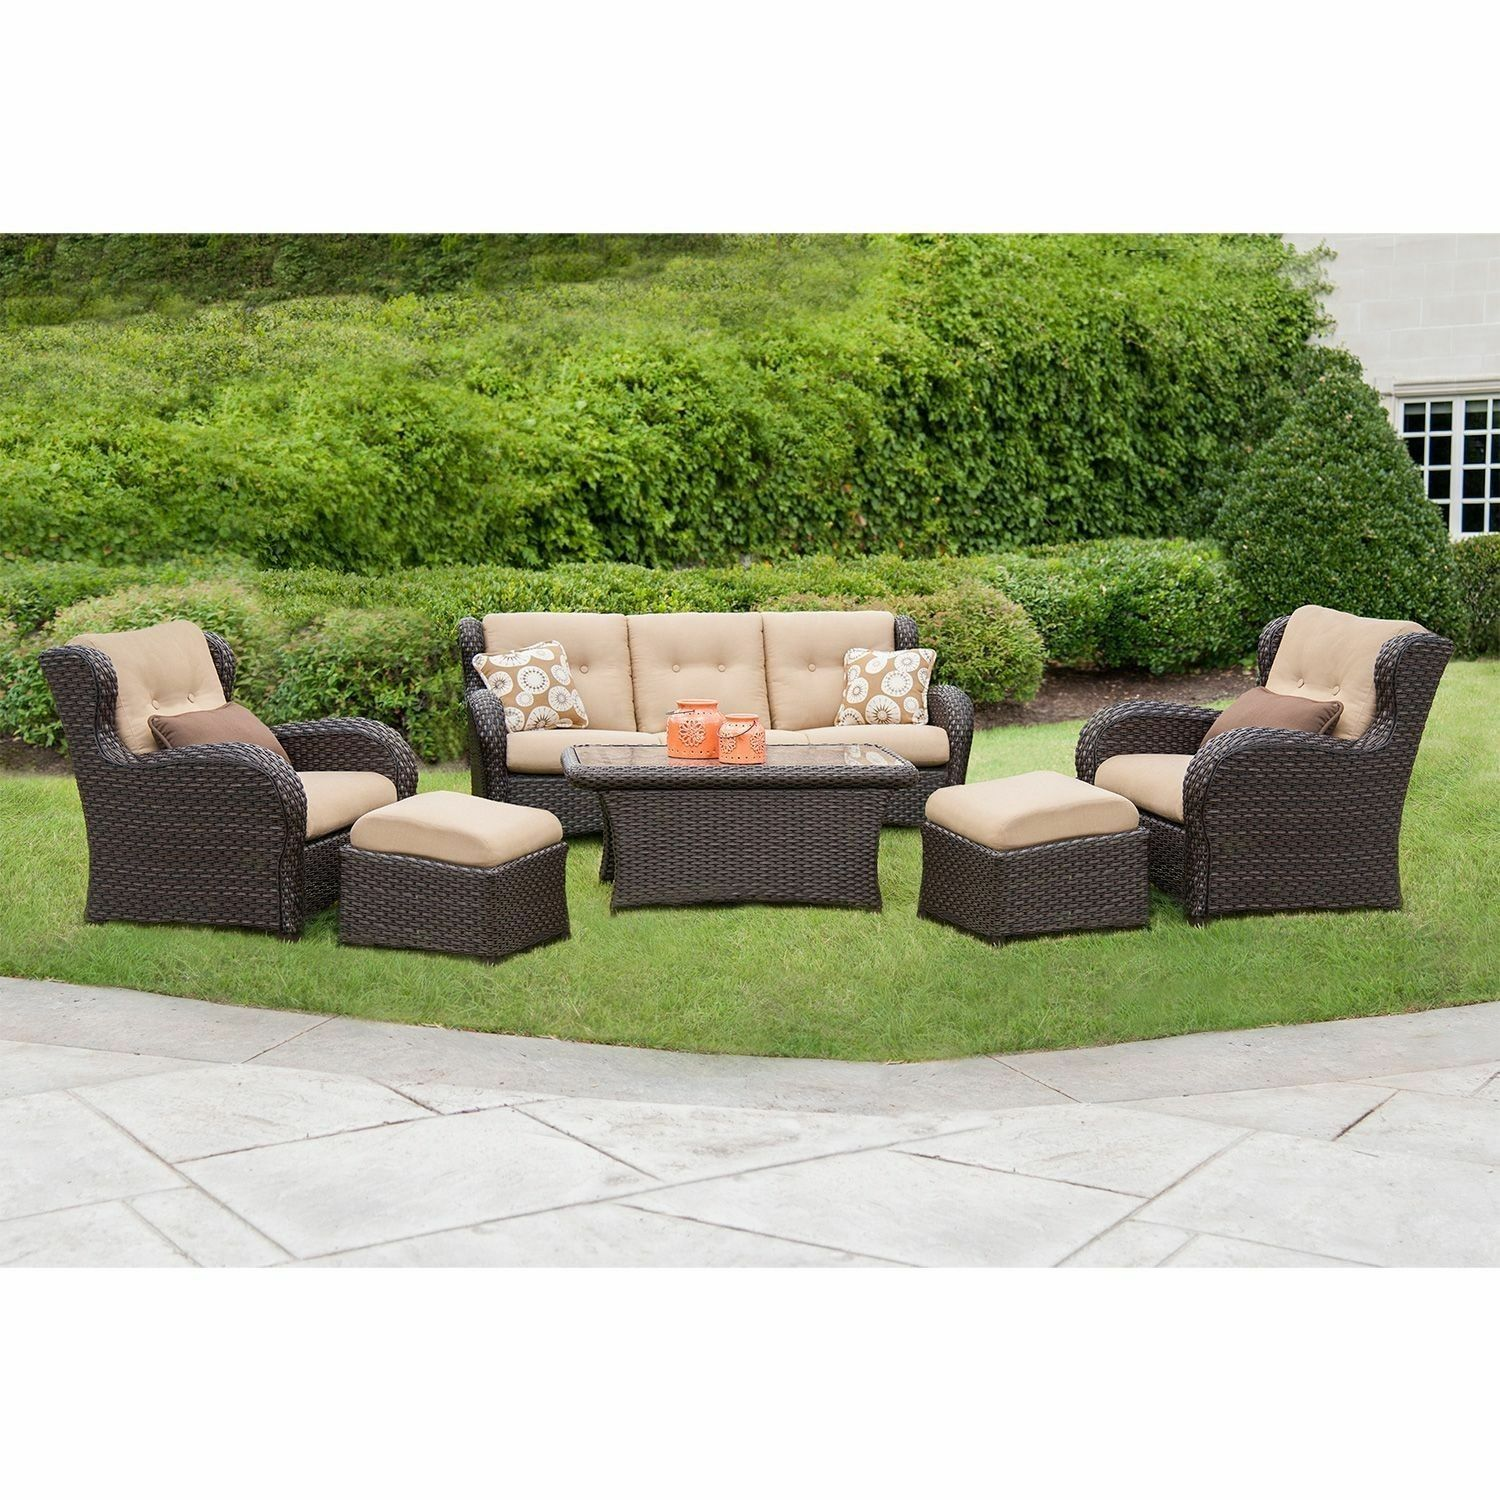 Hanover Strathmere 6 Piece Patio Seating Set   Top 7 Furniture Patio Sets  EBay